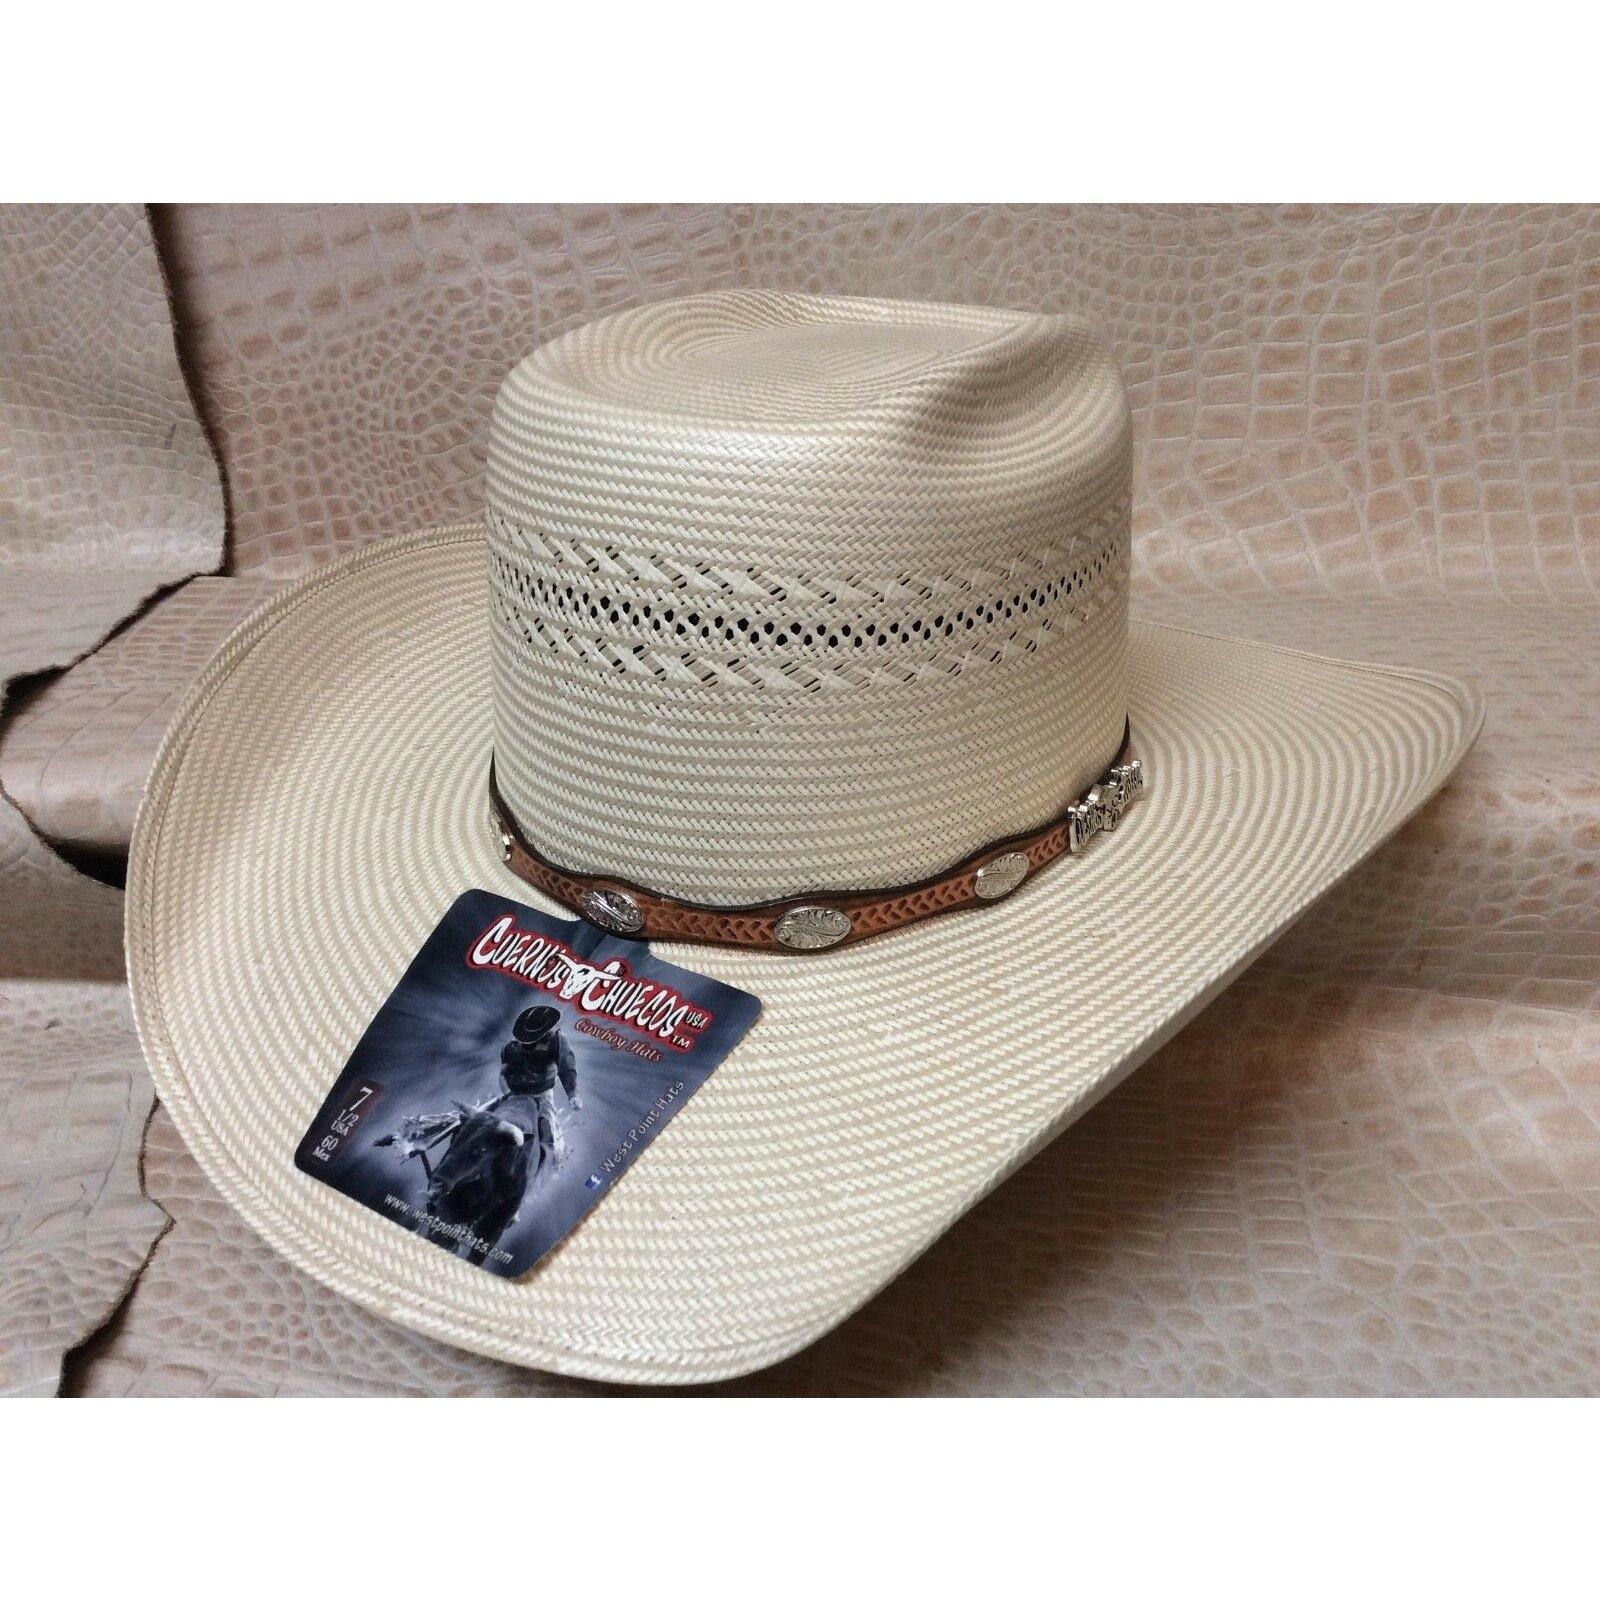 Cuernos Chuecos 100X 8 Seconds Rodeo Western Cowboy Straw Hat Natural Tan - CWesternwear